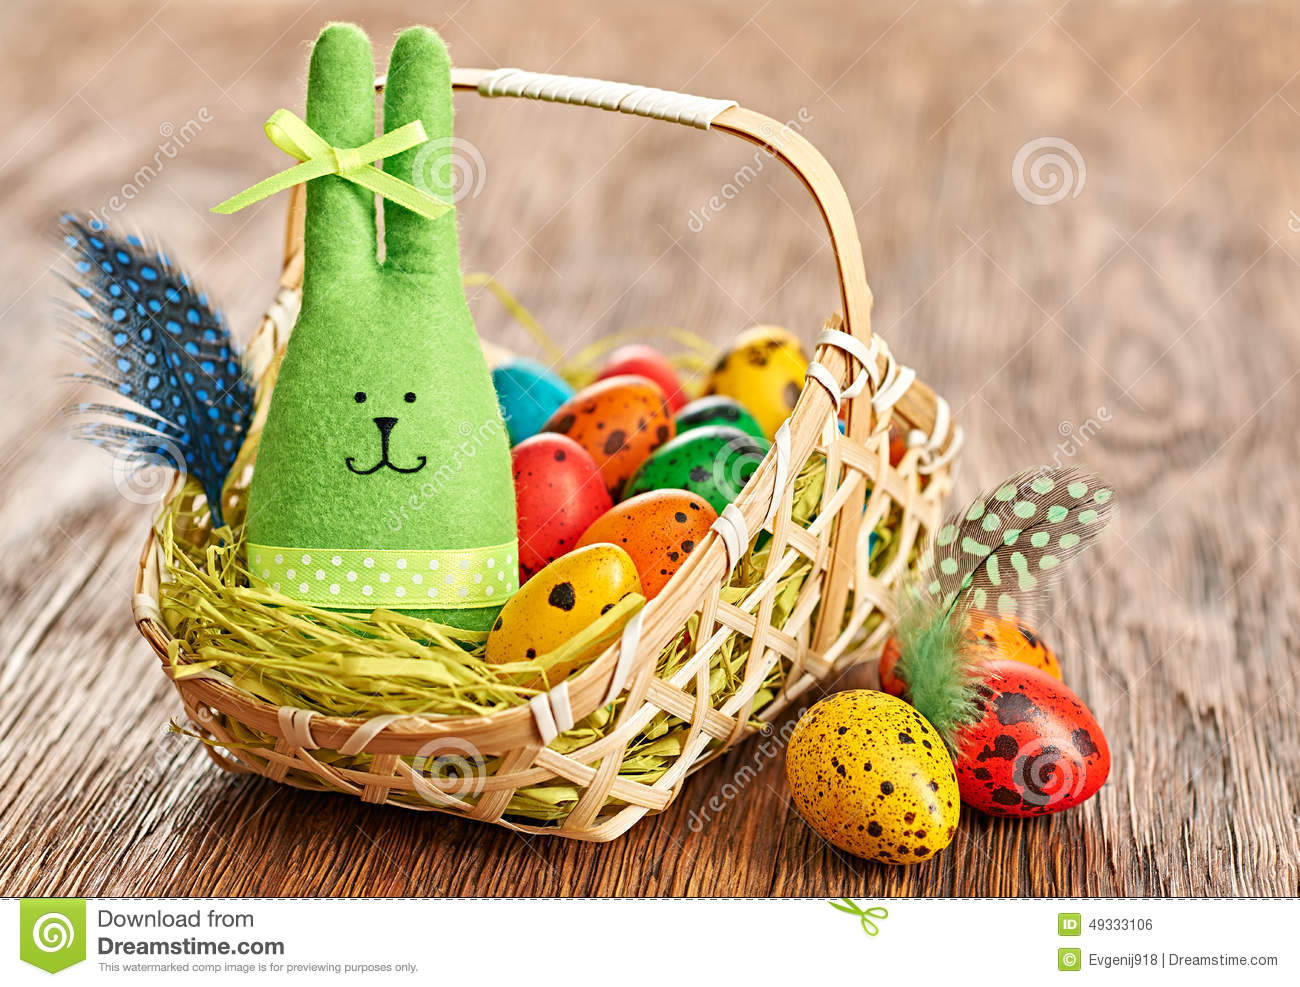 Handmade Wooden Easter Baskets : Easter bunny and painted eggs in basket on wooden